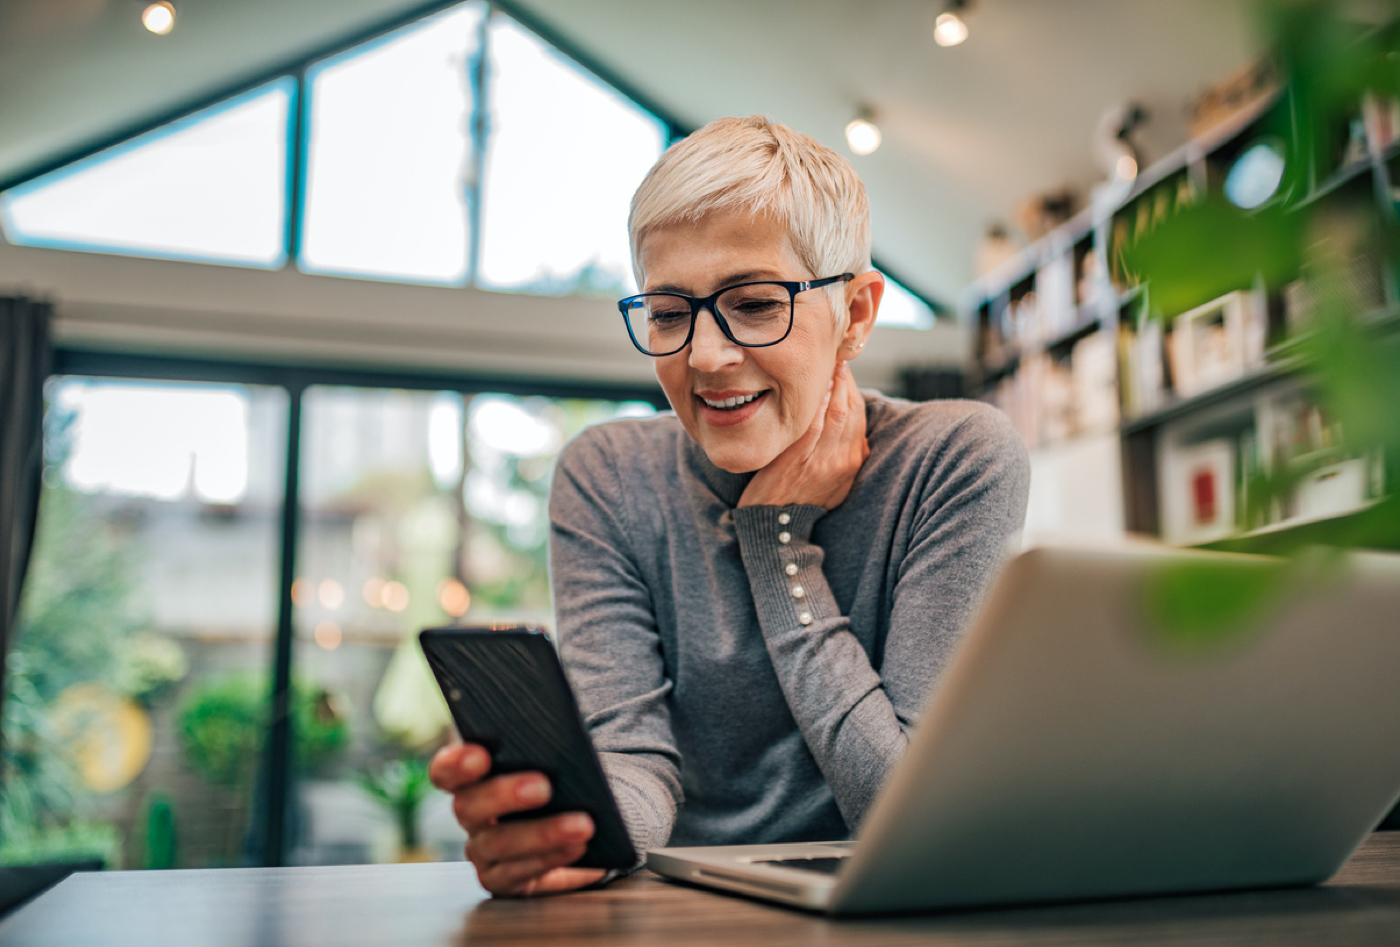 Smiling woman sitting at desk, looking at notification coming in on her smart phone